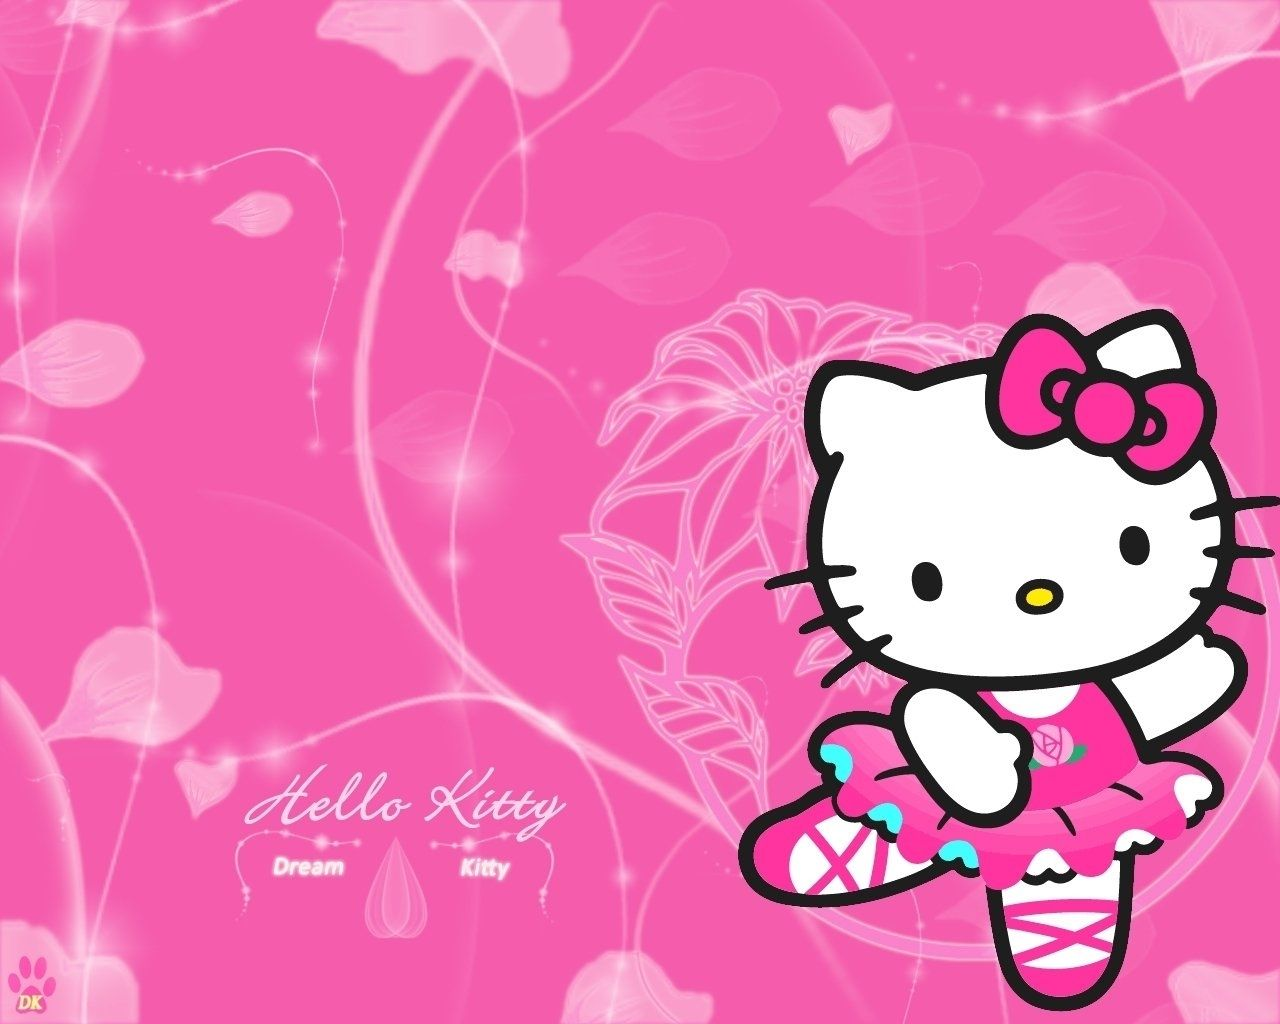 10 Top Pink Hello Kitty Wallpapers Full Hd 1920 1080 For Pc Desktop Hello Kitty Wallpaper Hd Hello Kitty Images Hello Kitty Backgrounds